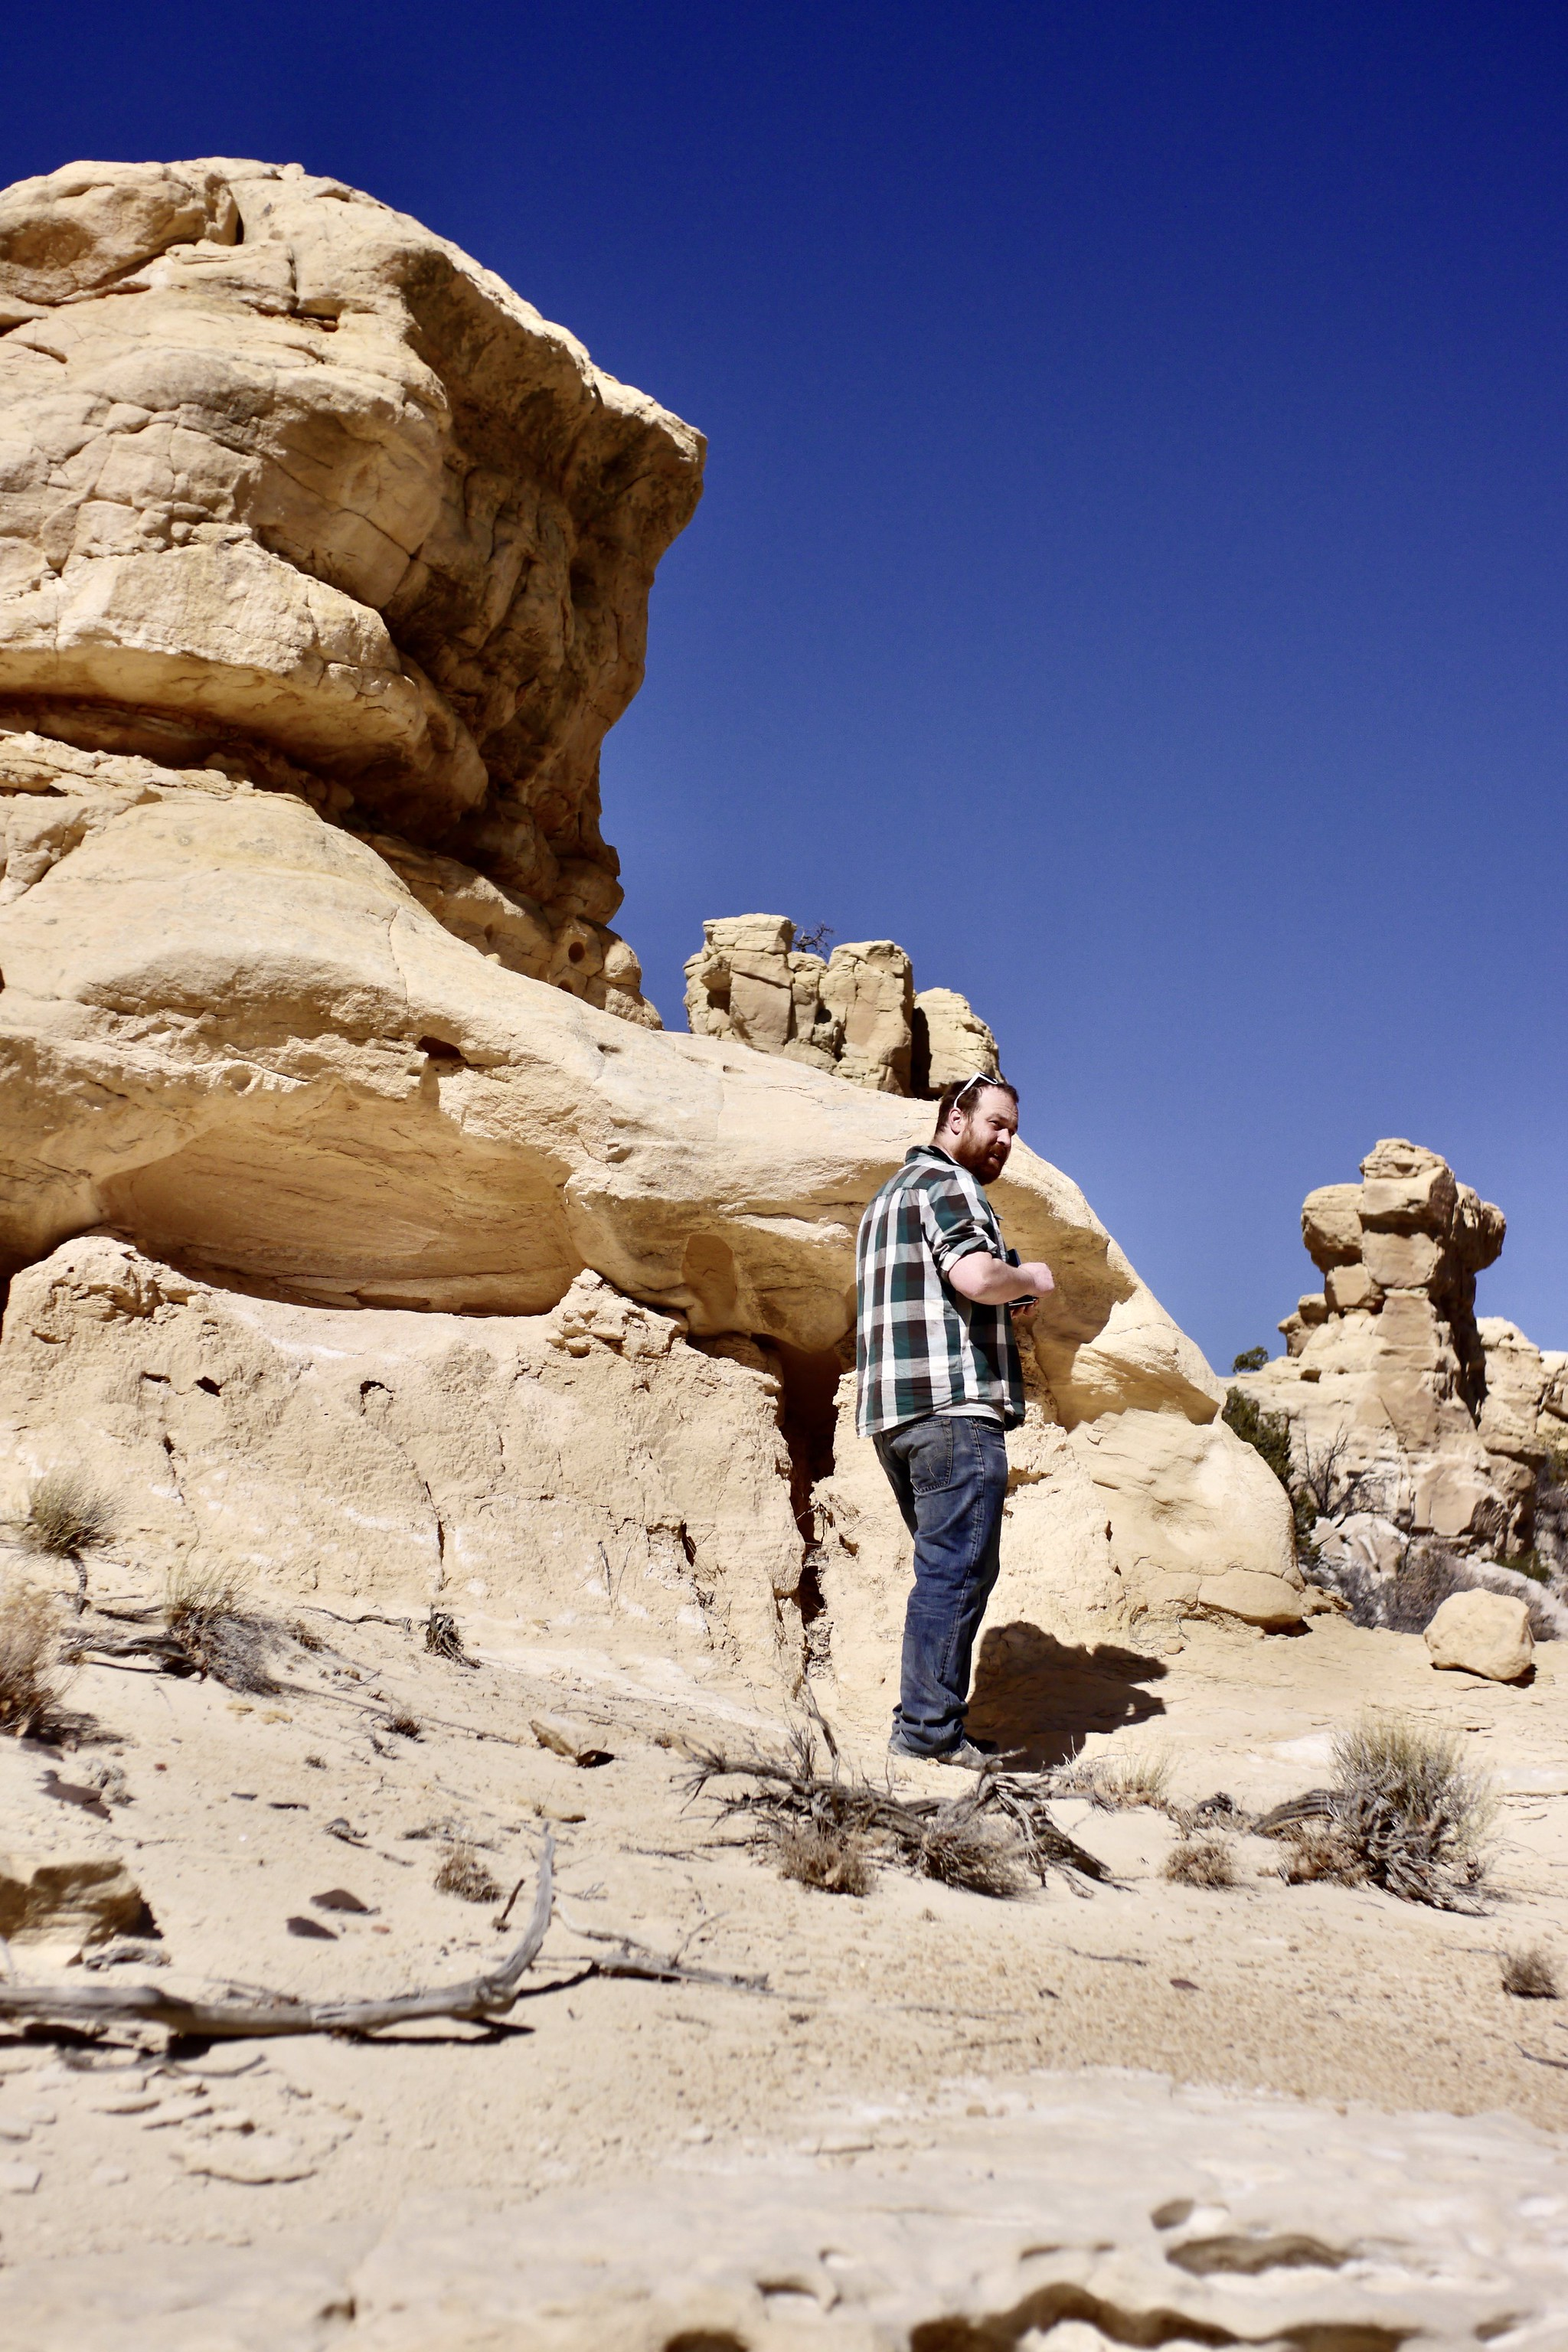 Ethan Moses at Ojito Wilderness